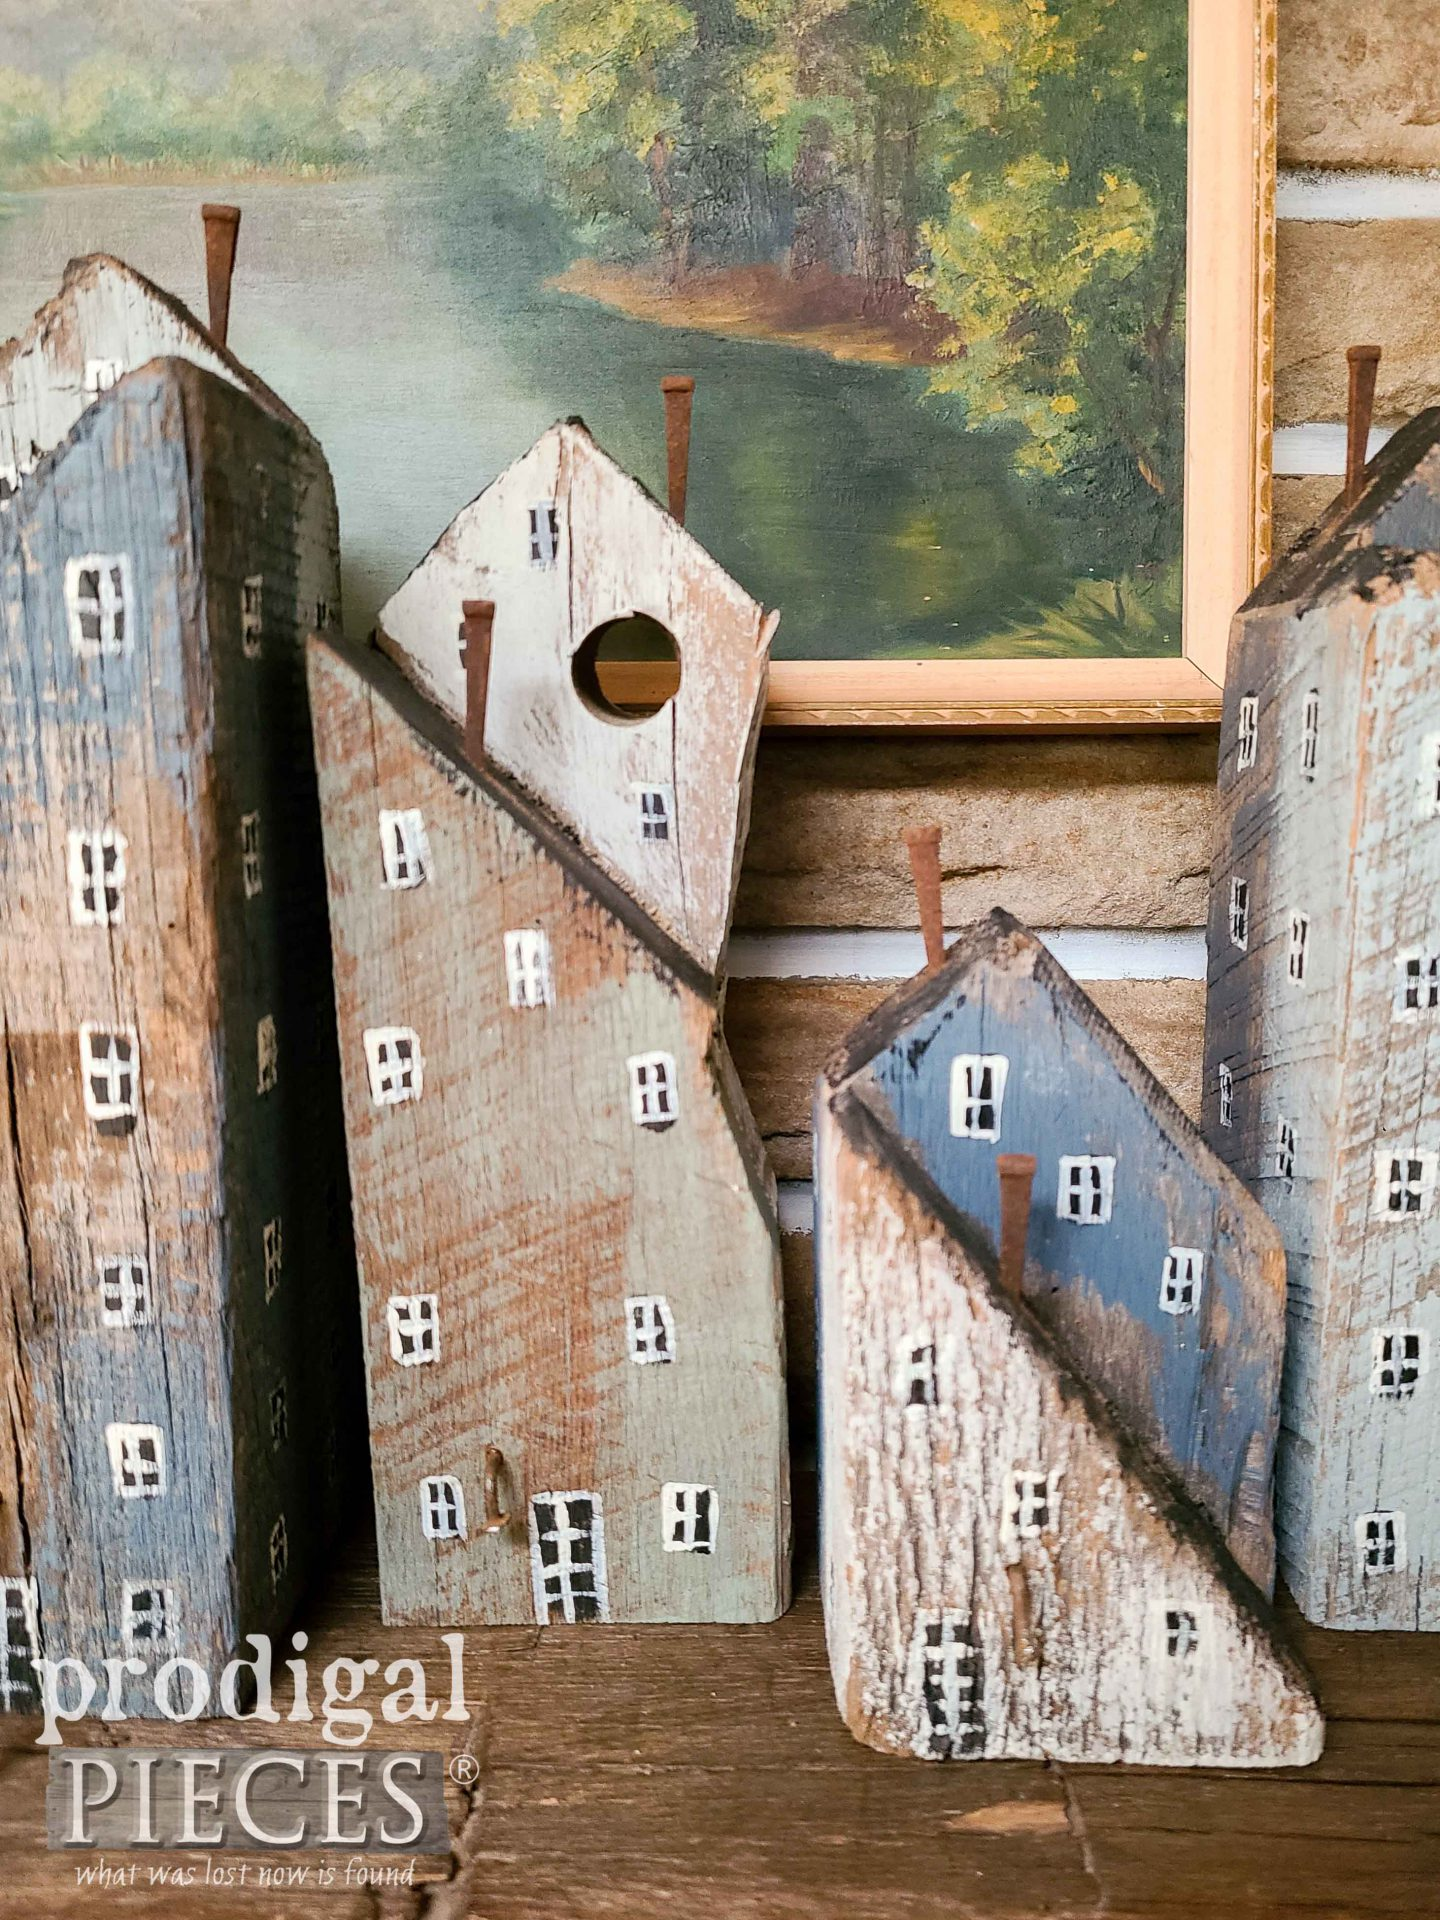 Reclaimed Wood Barn Beam Houses Created by Larissa of Prodigal Pieces | prodigalpieces.com #prodigalpieces #farmhouse #diy #scandinavian #rustic